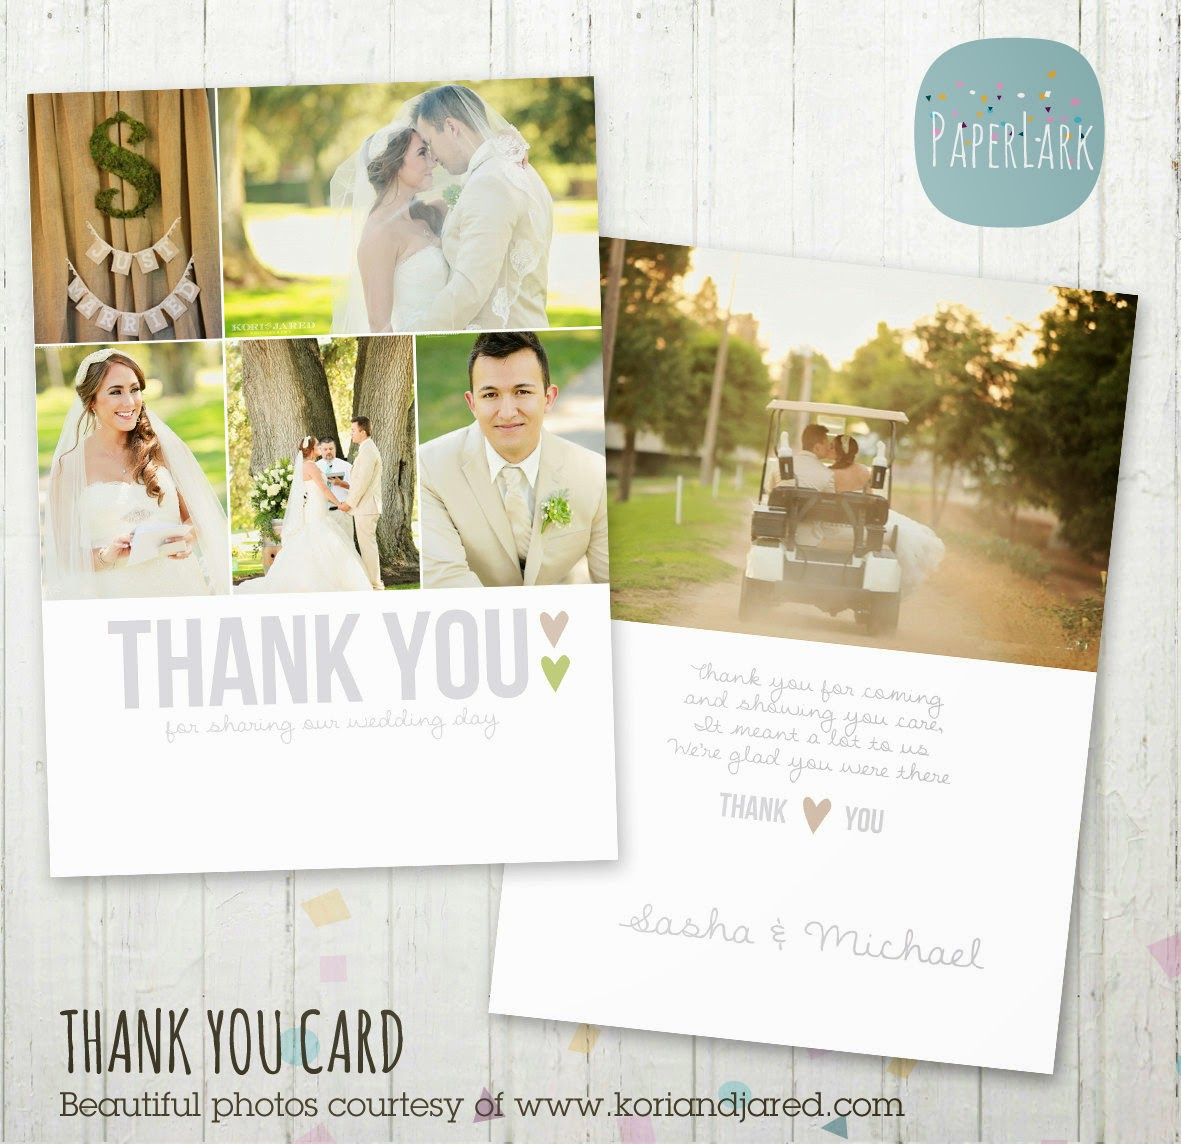 https://www.etsy.com/listing/129332263/wedding-thank-you-card-photoshop?ref=shop_home_active_1